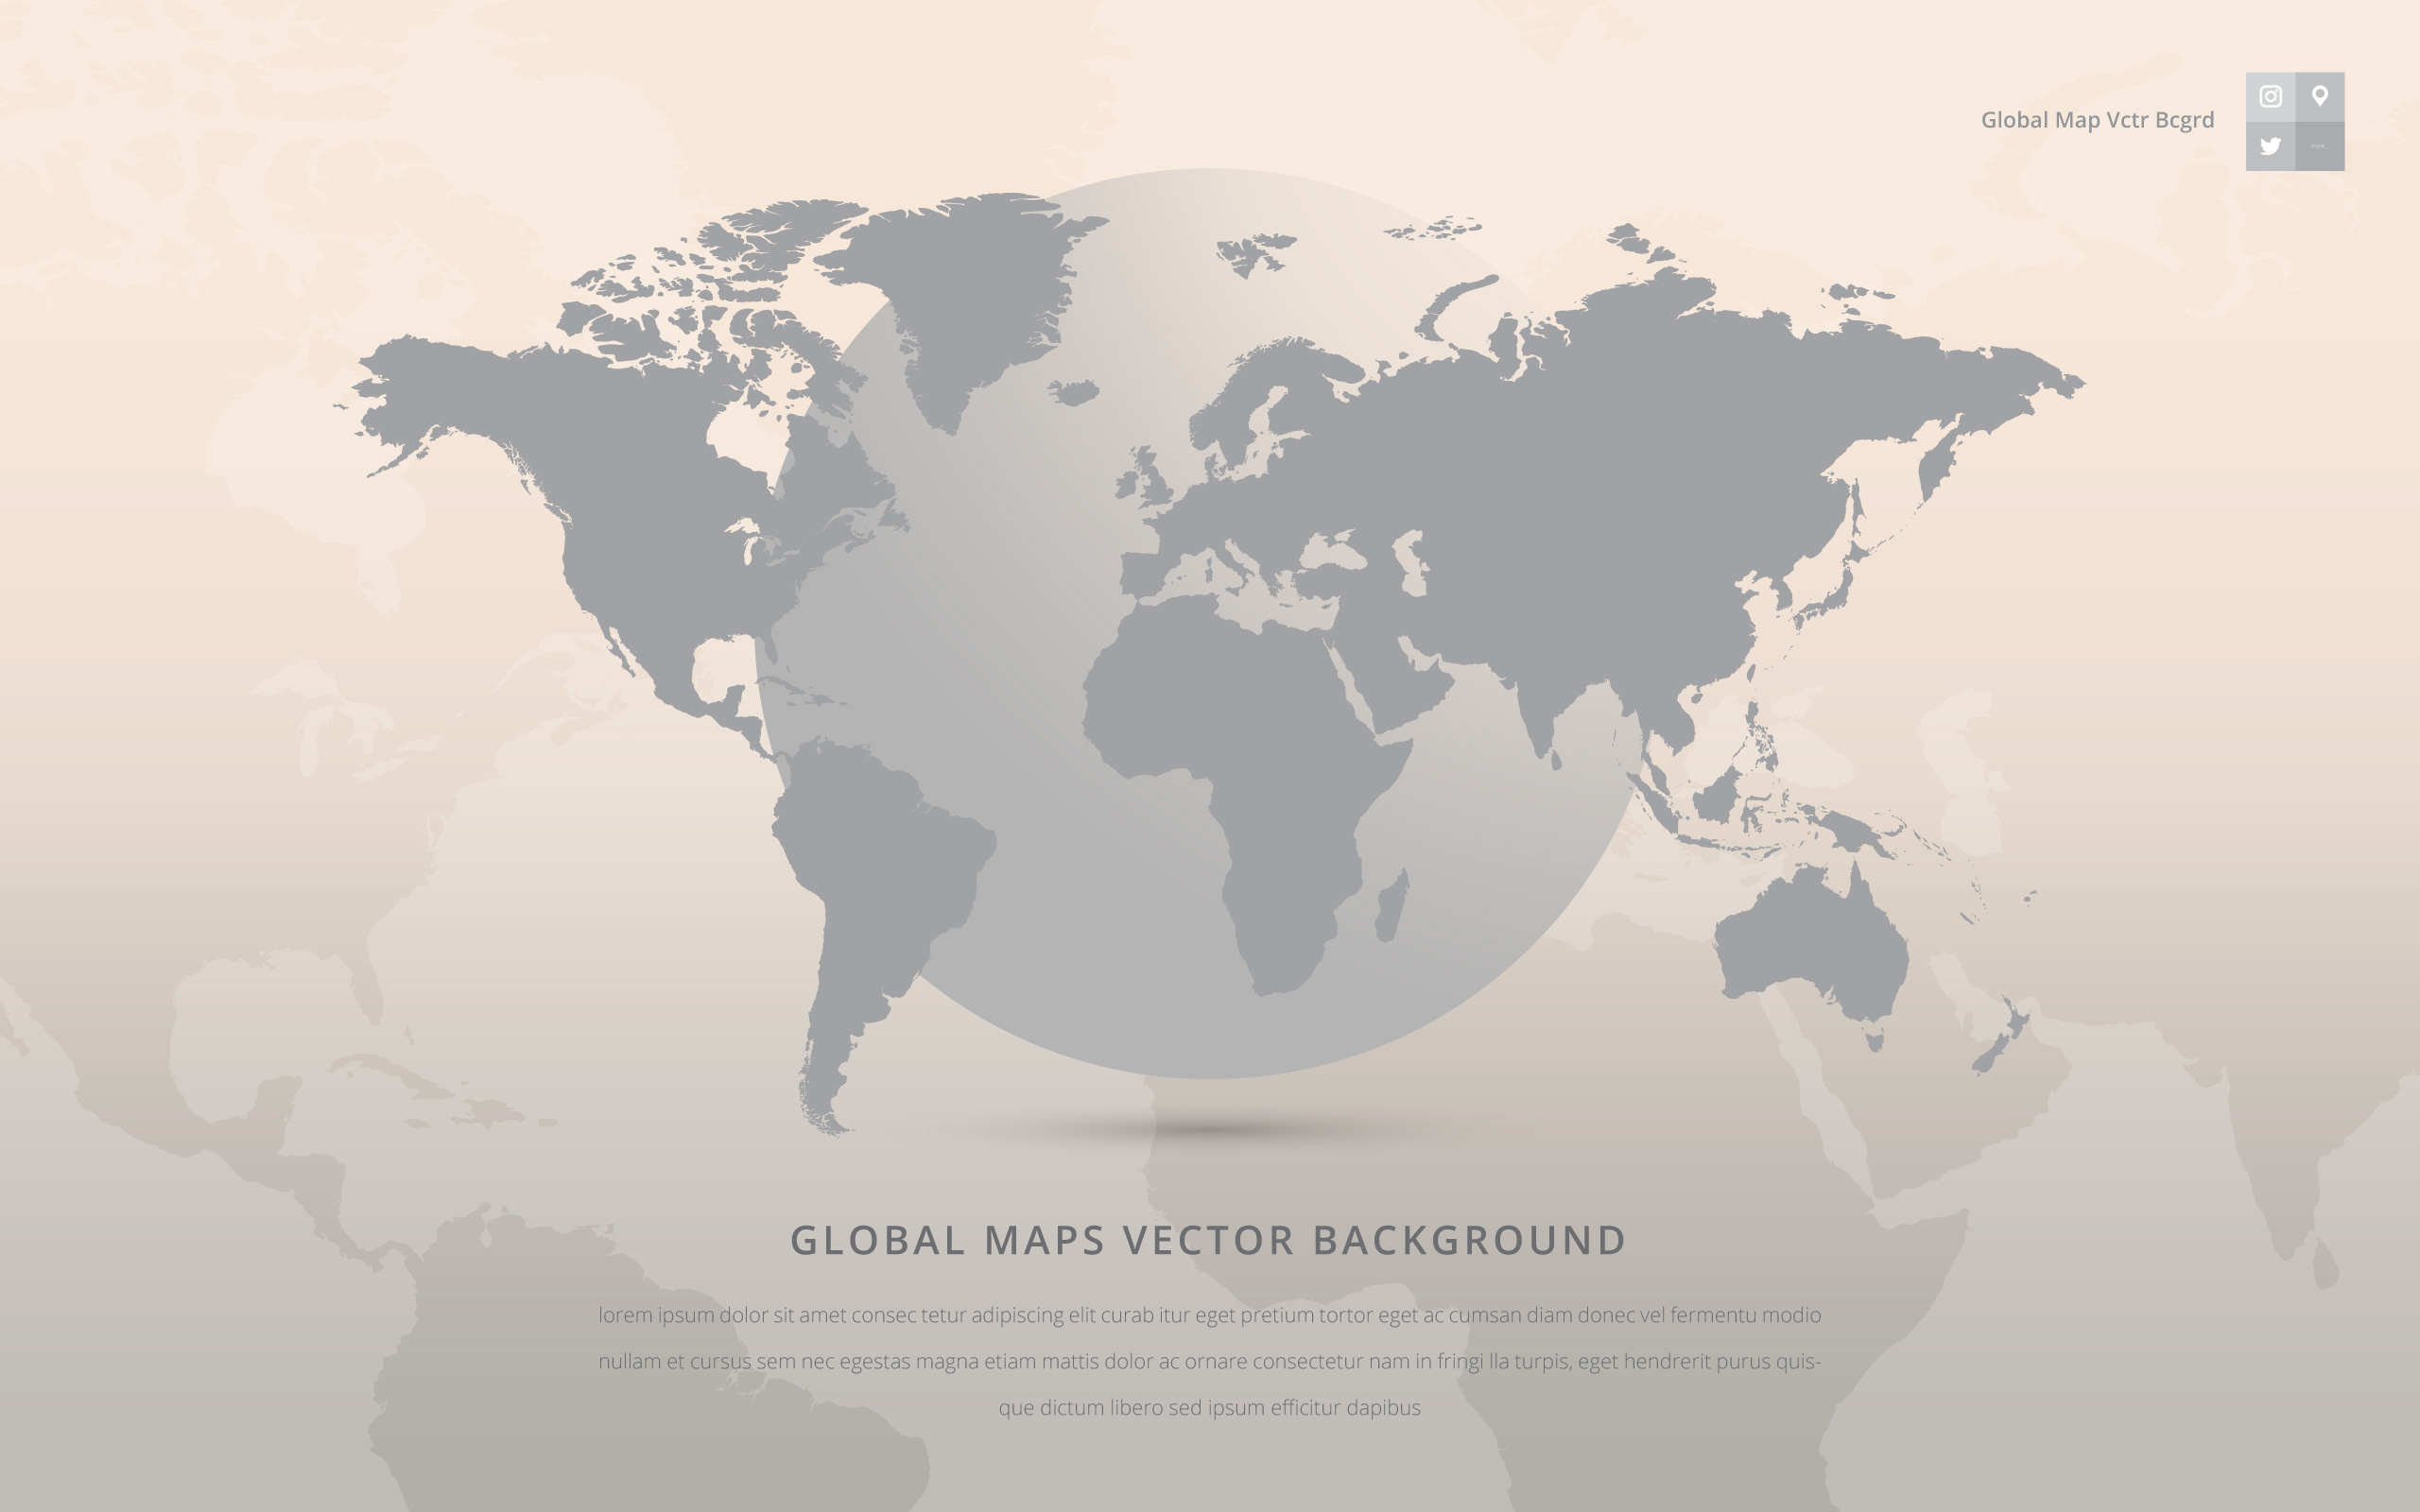 Global Maps Vector Background